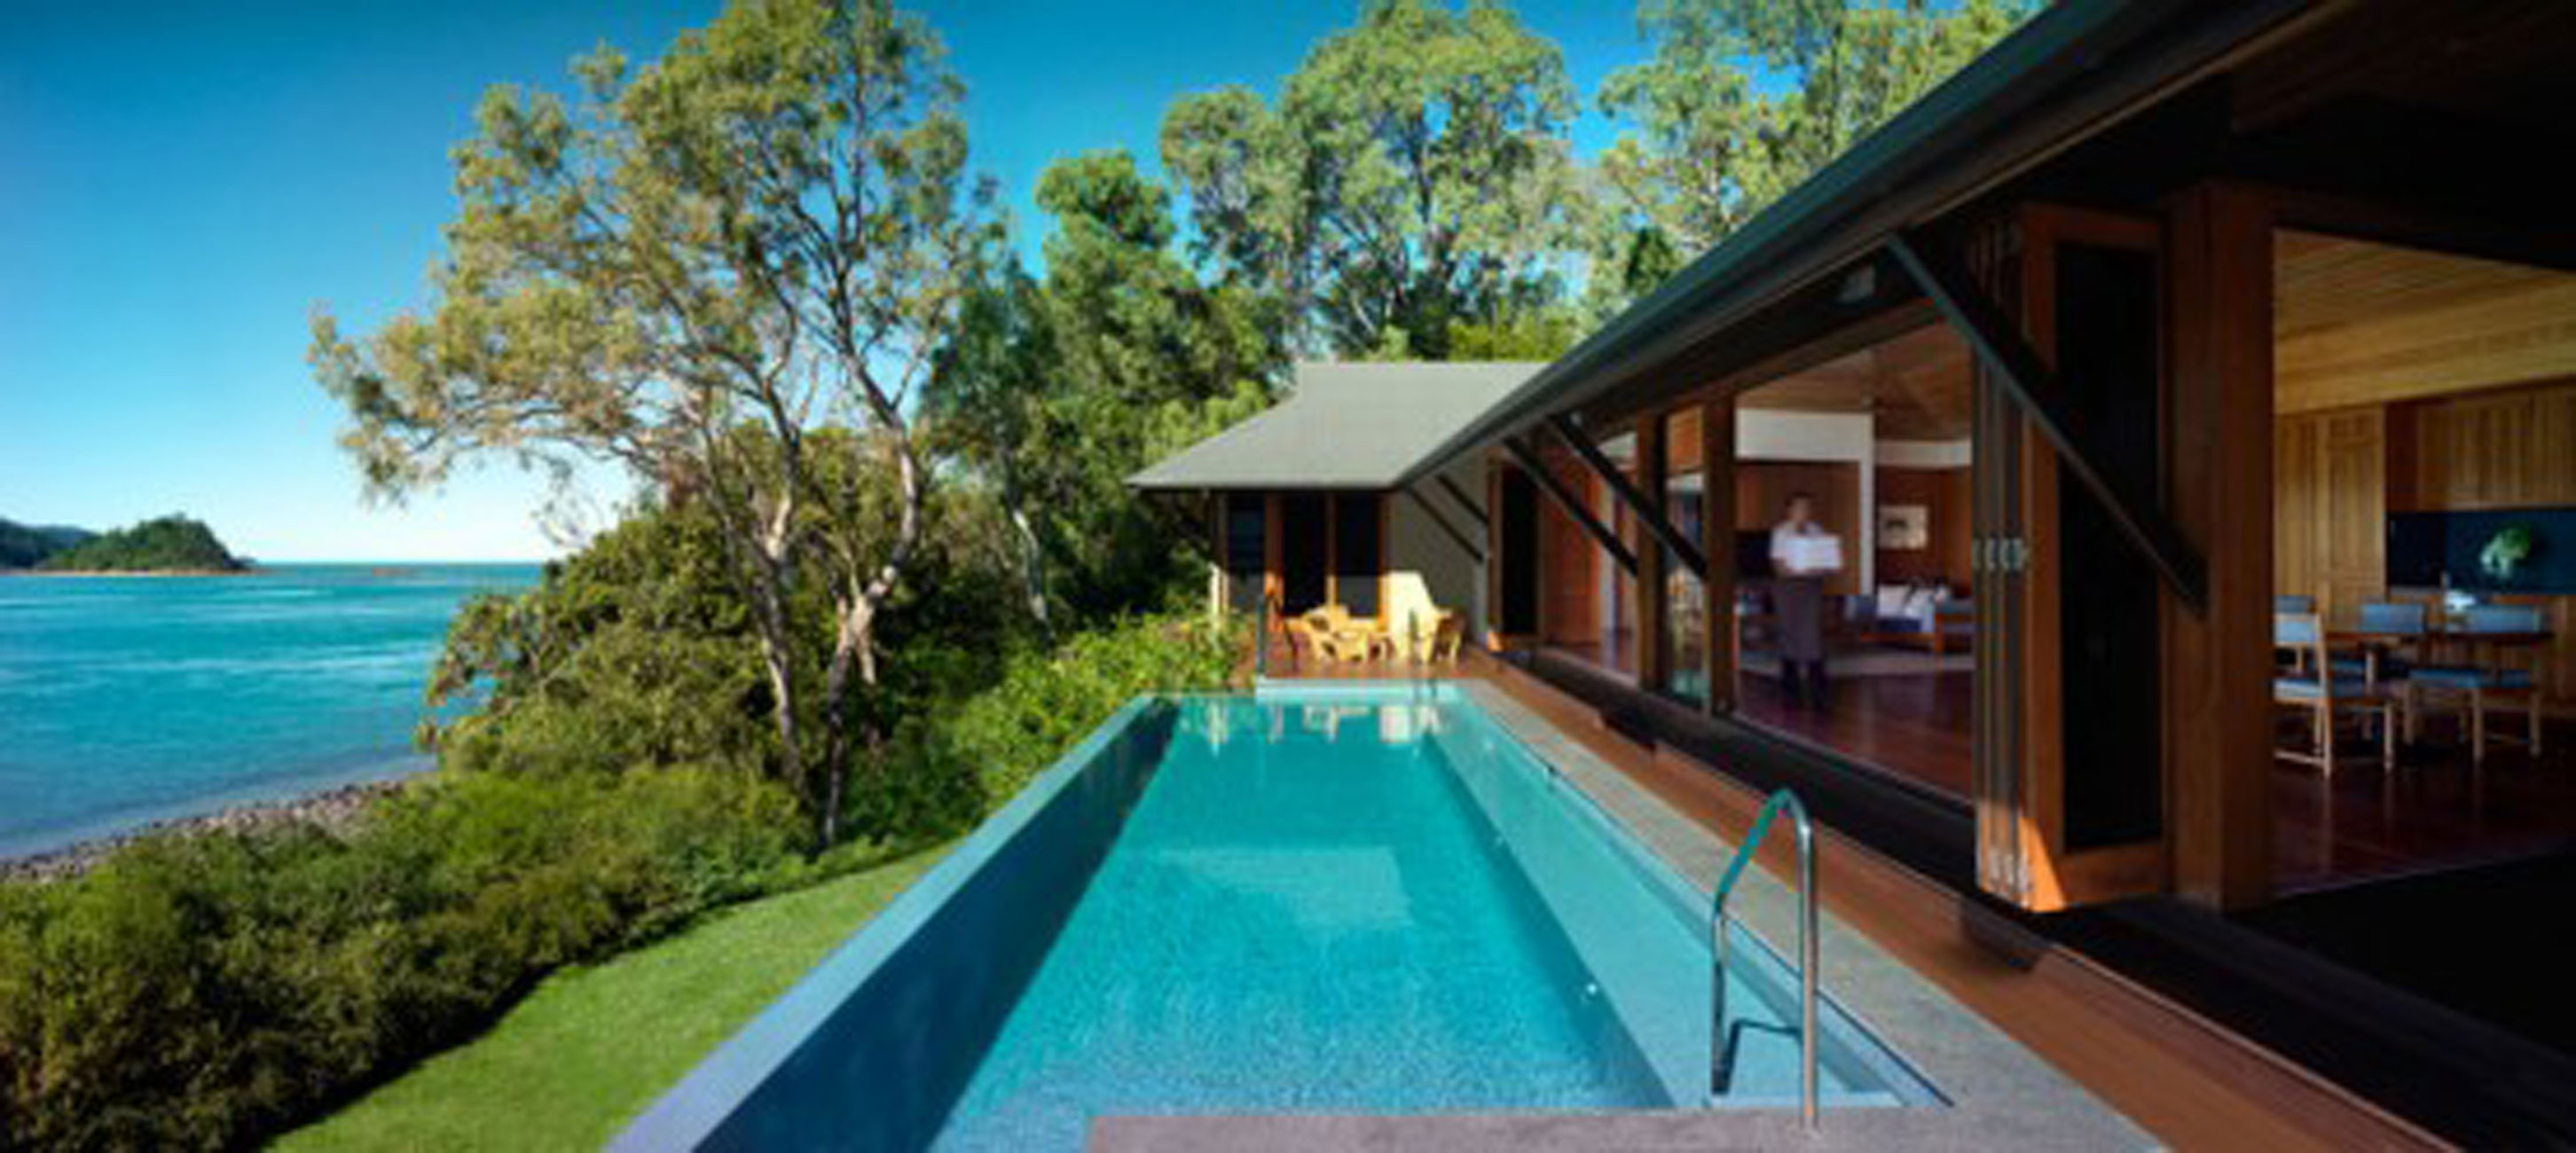 One Bedroom Houses Best Luxury Hotels In Australia Top 10 Ealuxe Com